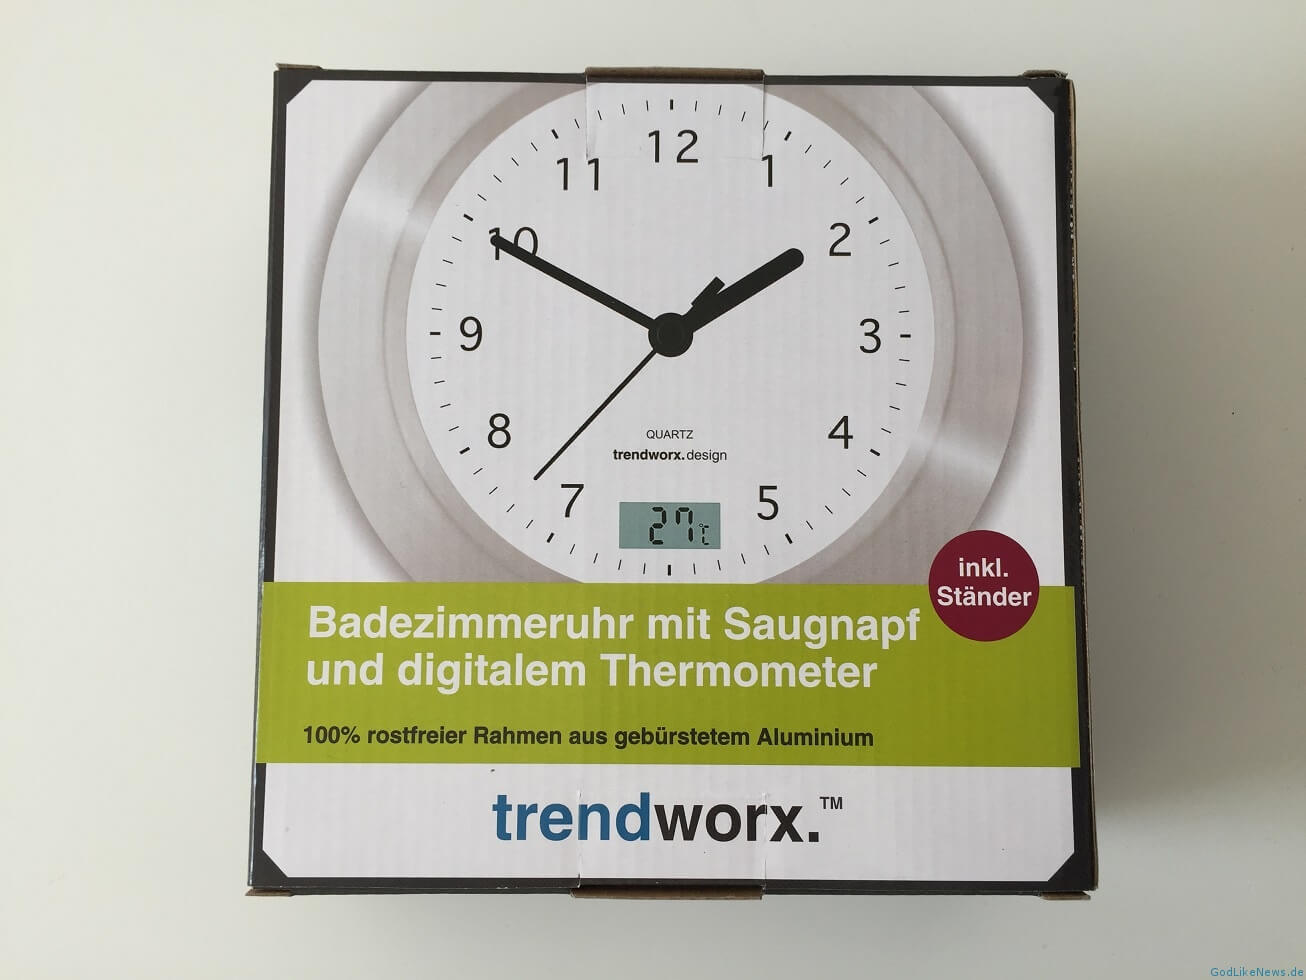 Badezimmeruhr Badezimmeruhr Mit Saugnapf And Thermometer Review